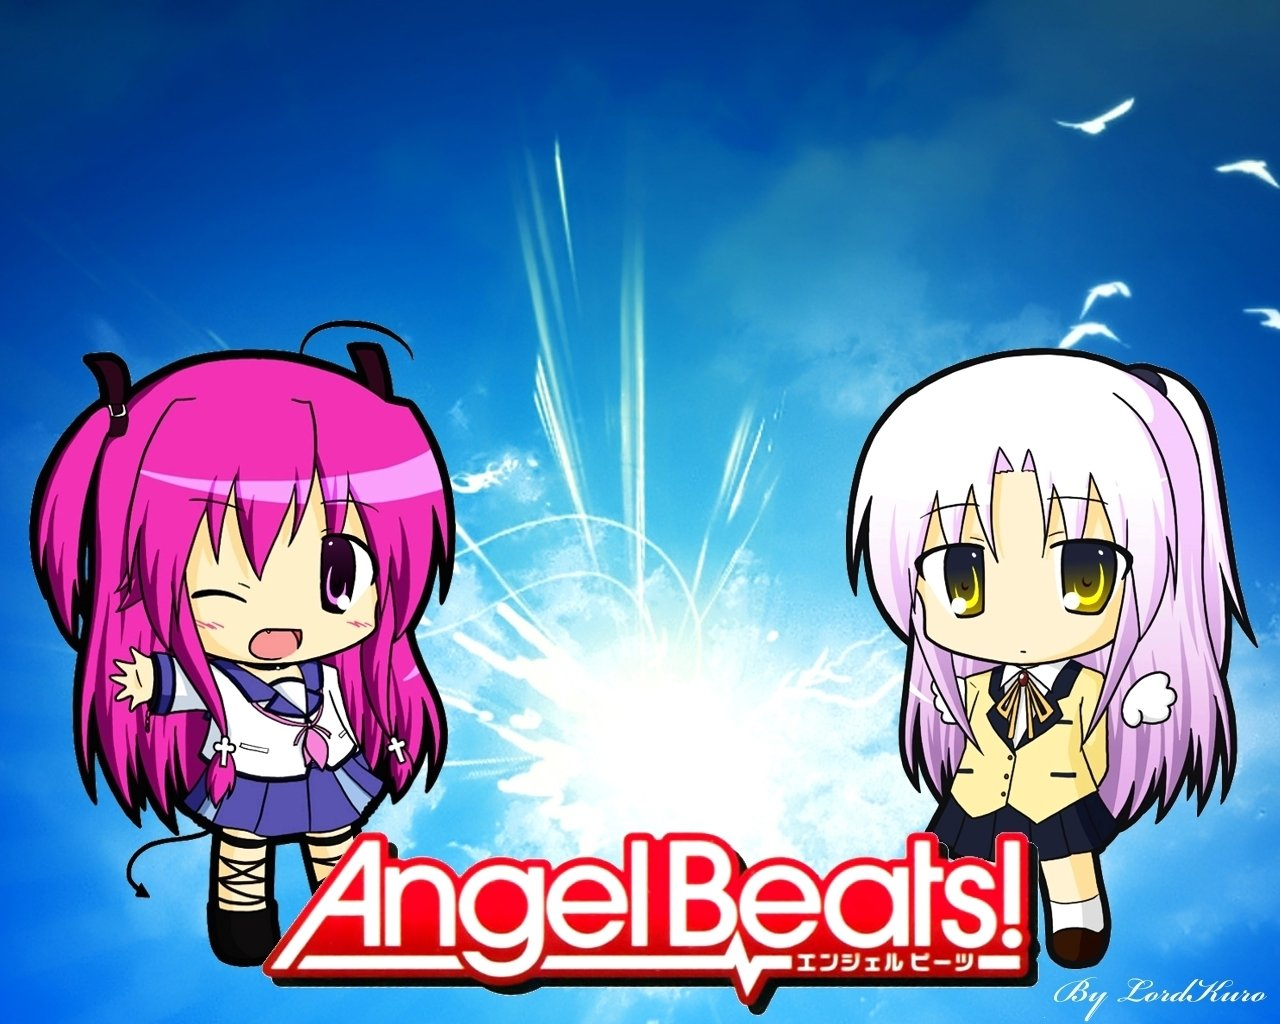 Download hd 1280x1024 Angel Beats! PC background ID:235401 for free